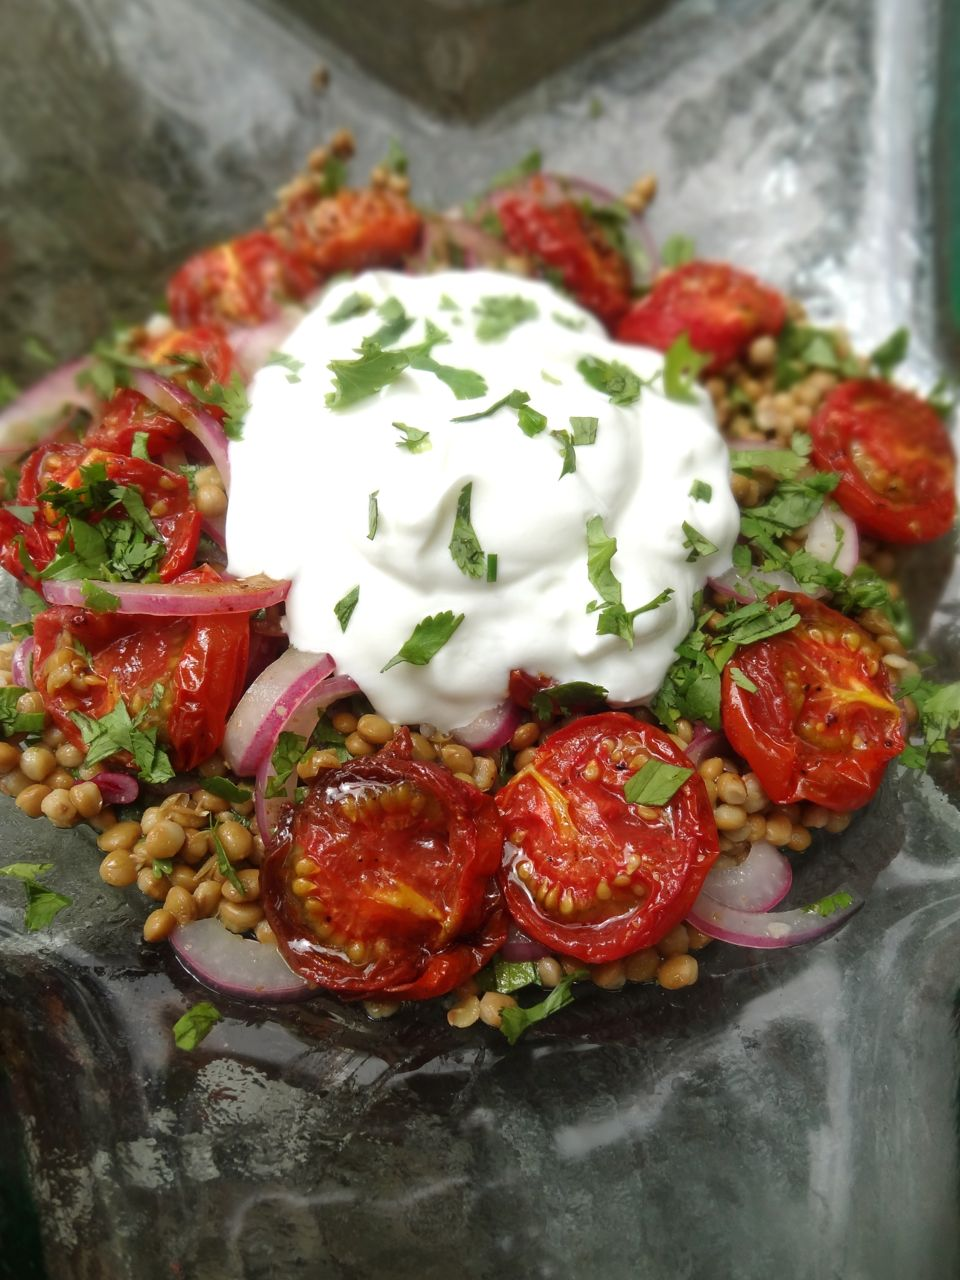 ... castelluccio lentils with tomatoes and gorgonzola from his award